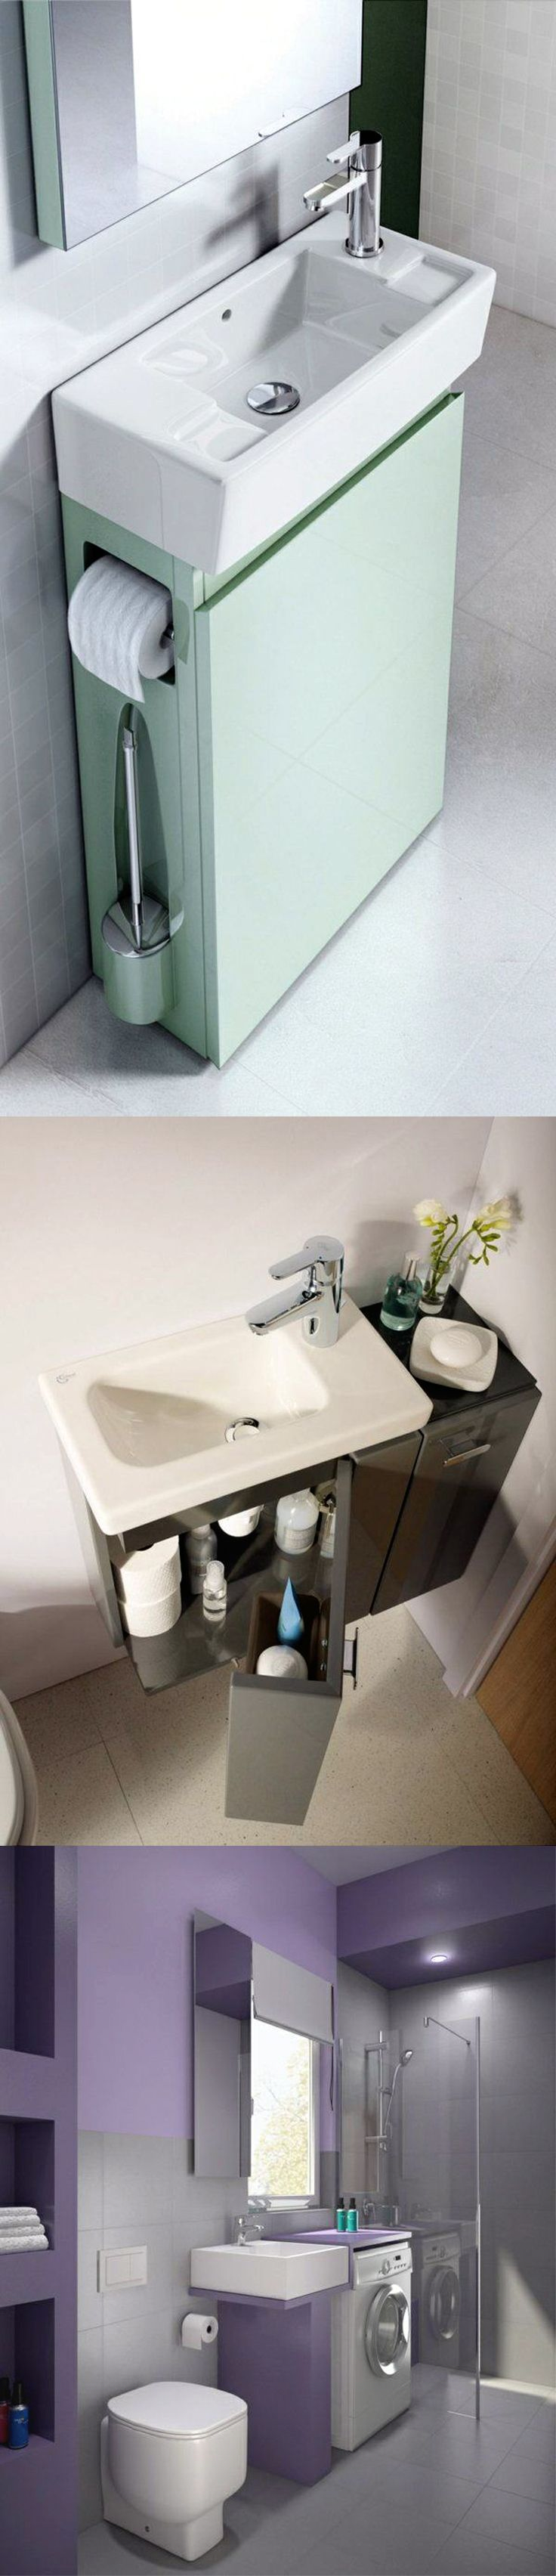 Möbel Für Kleines Bad Small Bathroom Ideas Space Saving Modern Bathroom Furniture